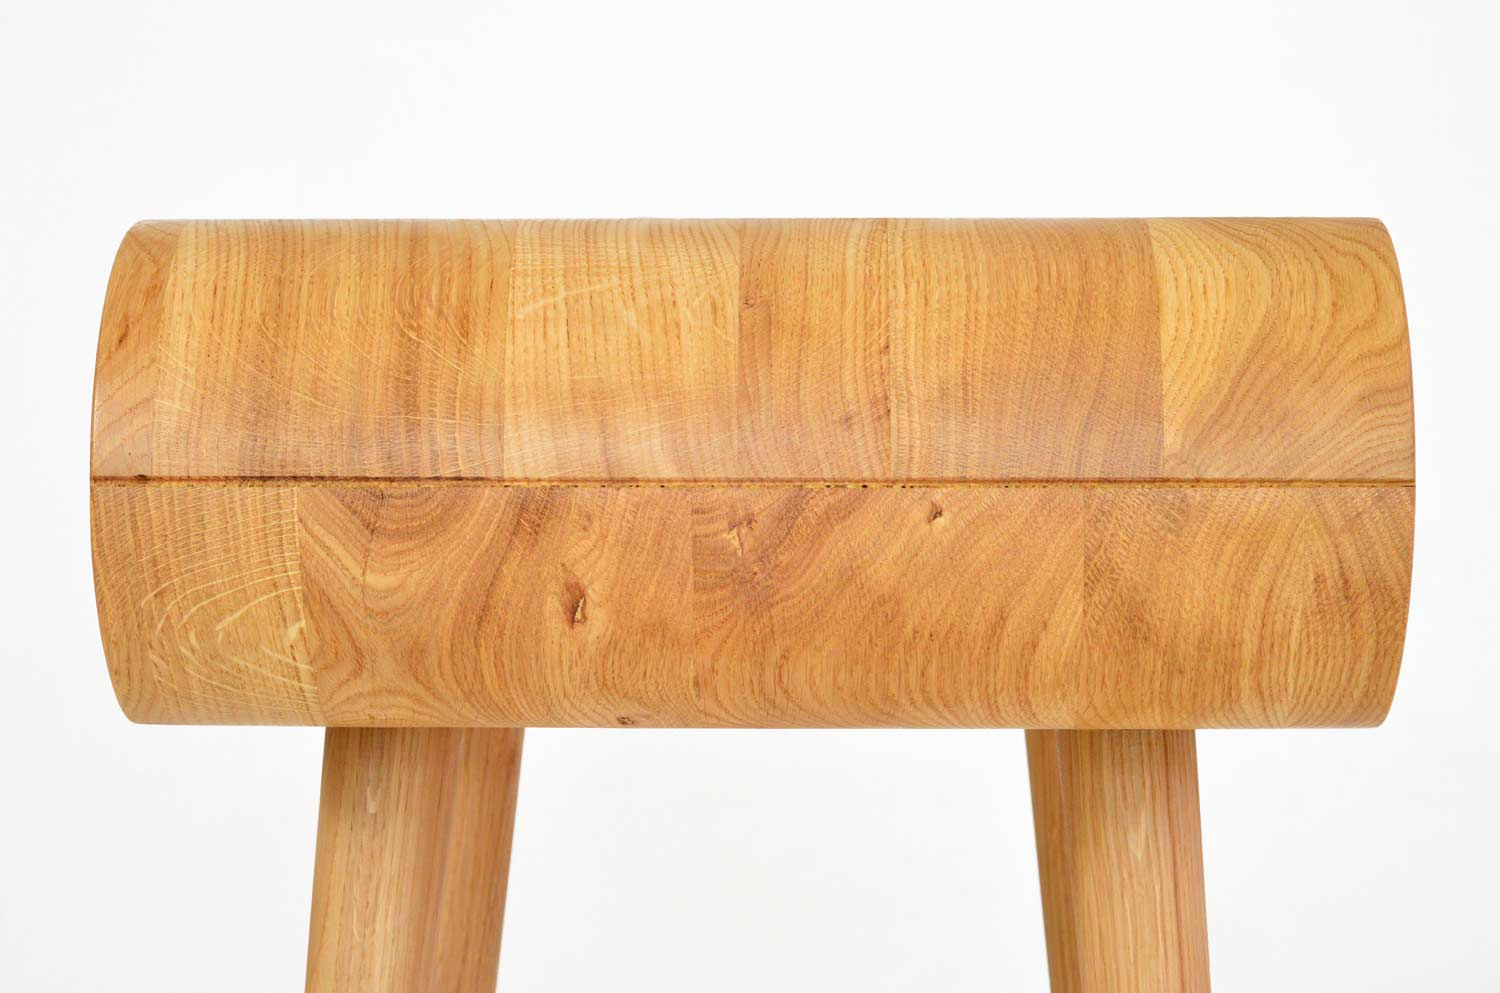 Made in Solid Oak. Can be refurbished anytime -